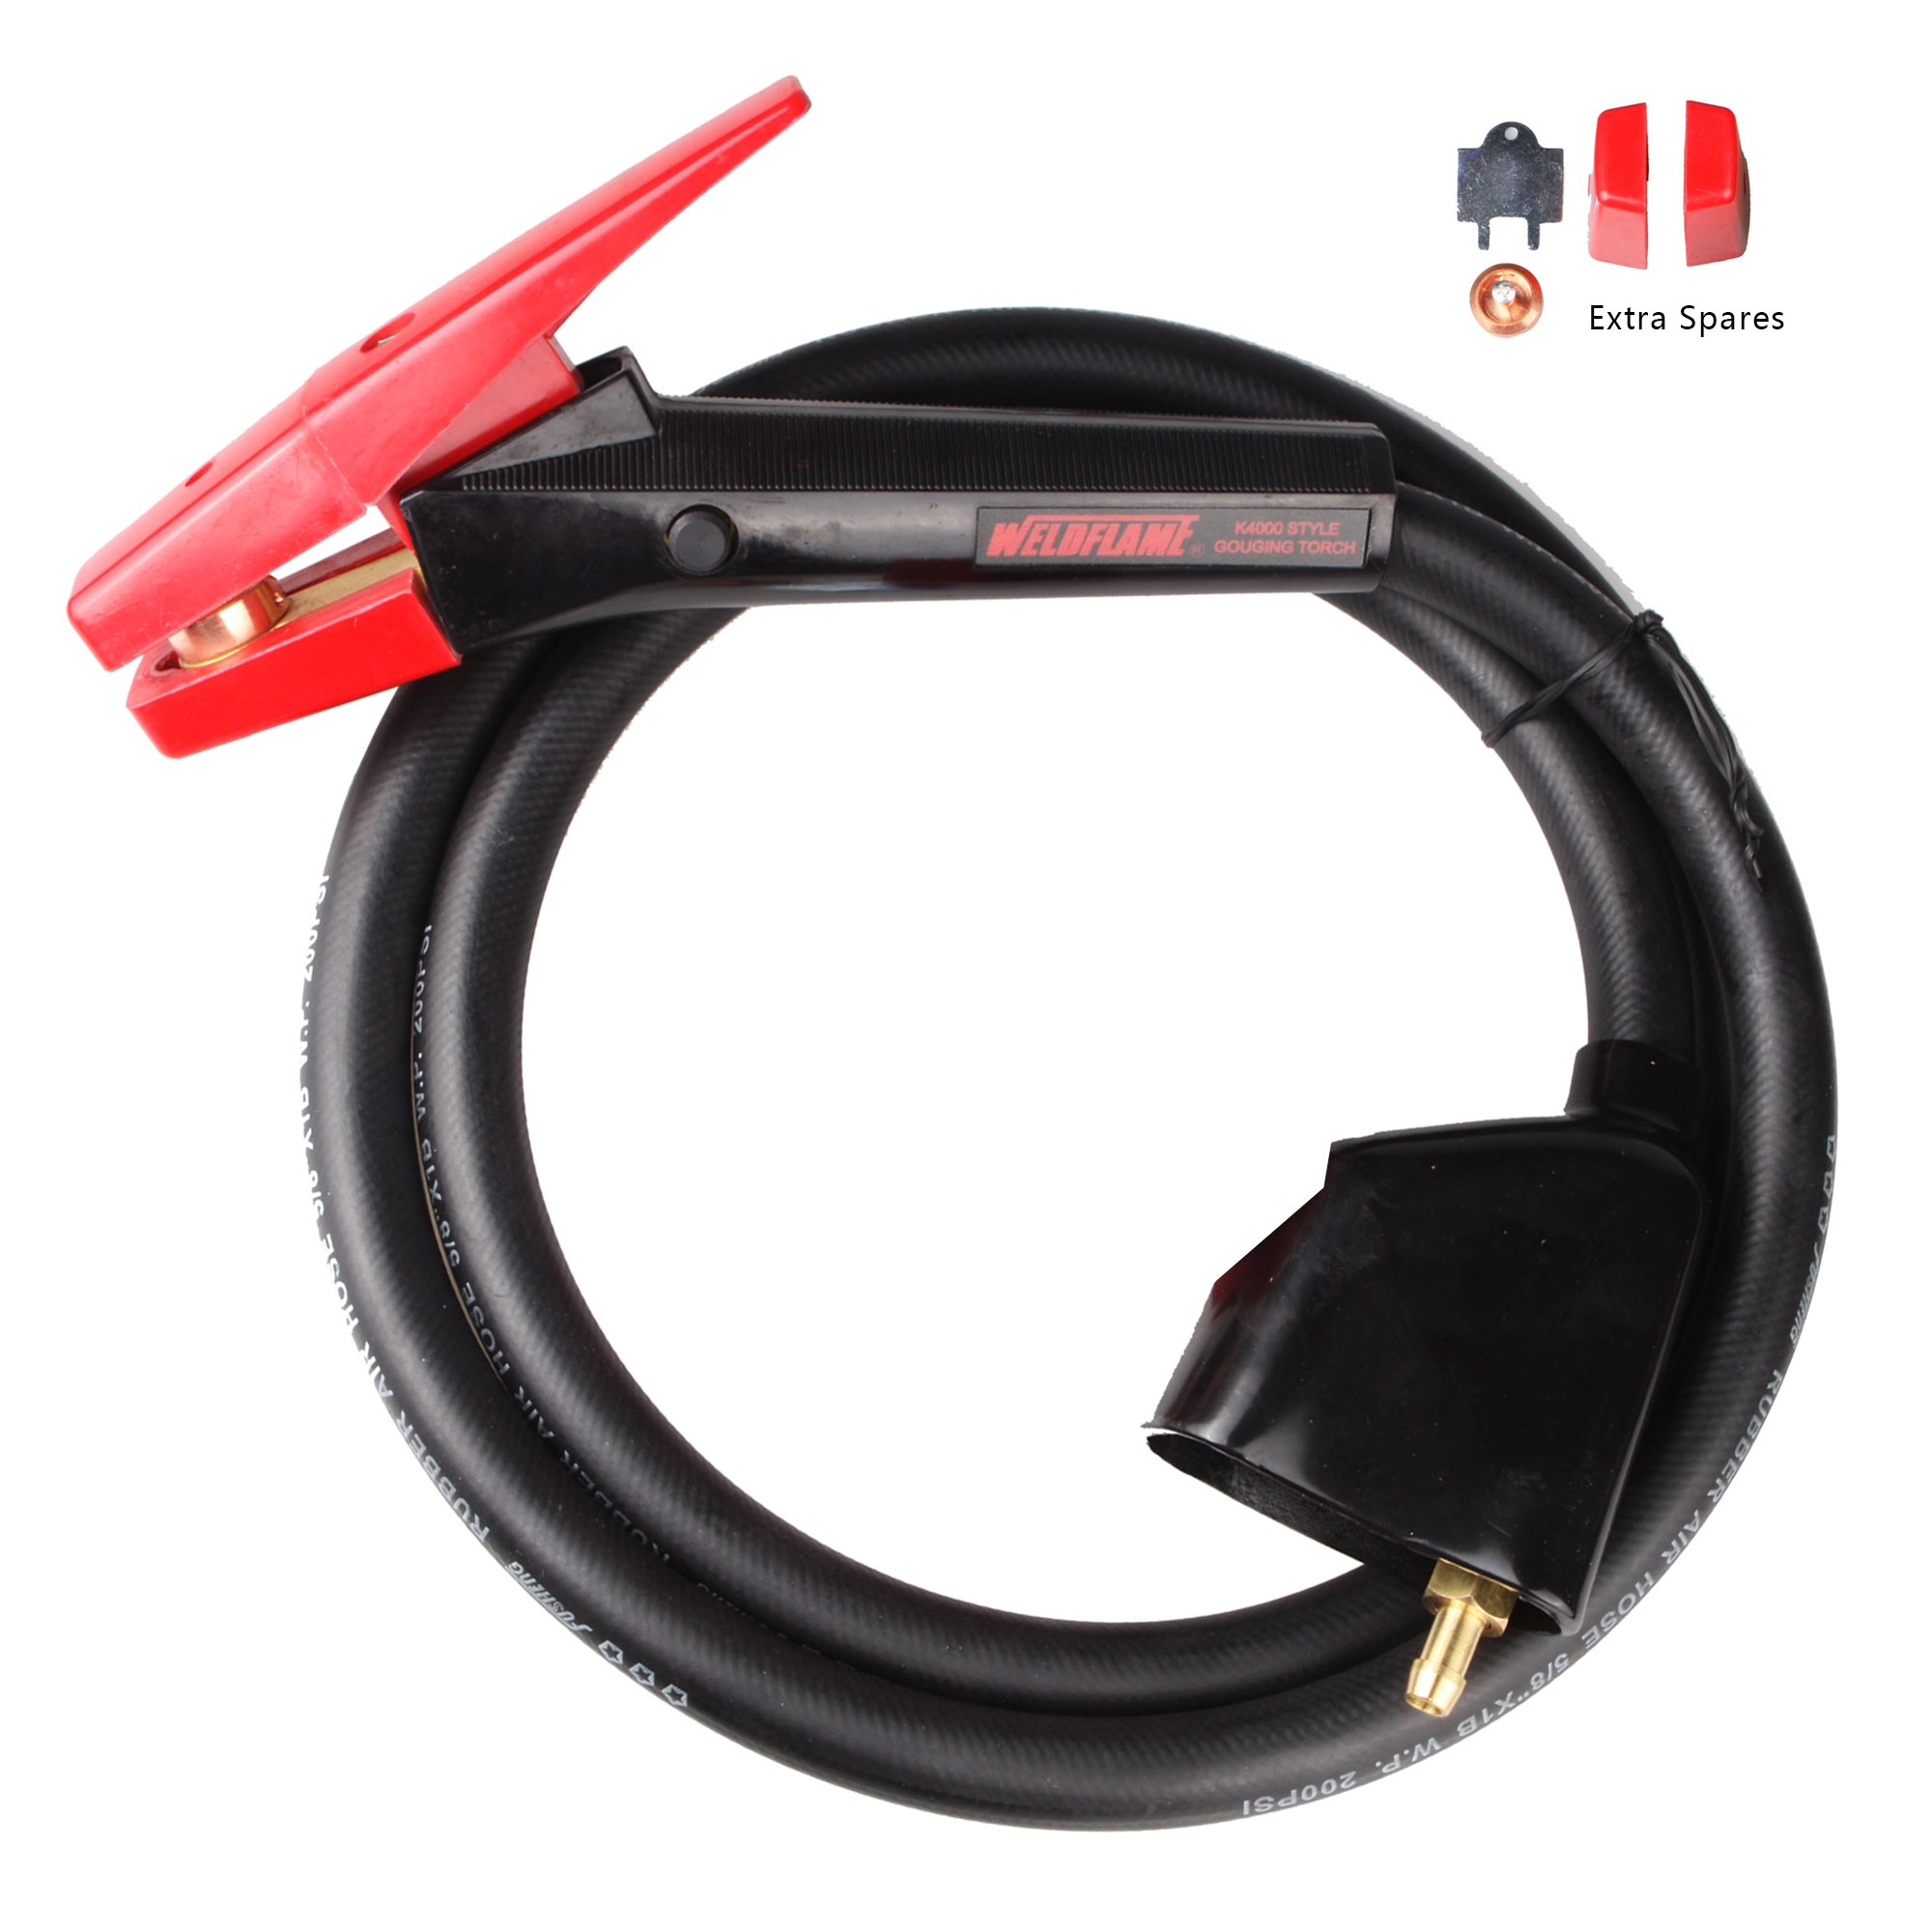 Weldflame 1000 Amp K4000 Style Carbon Arc Gouging Torch with 7' Cable